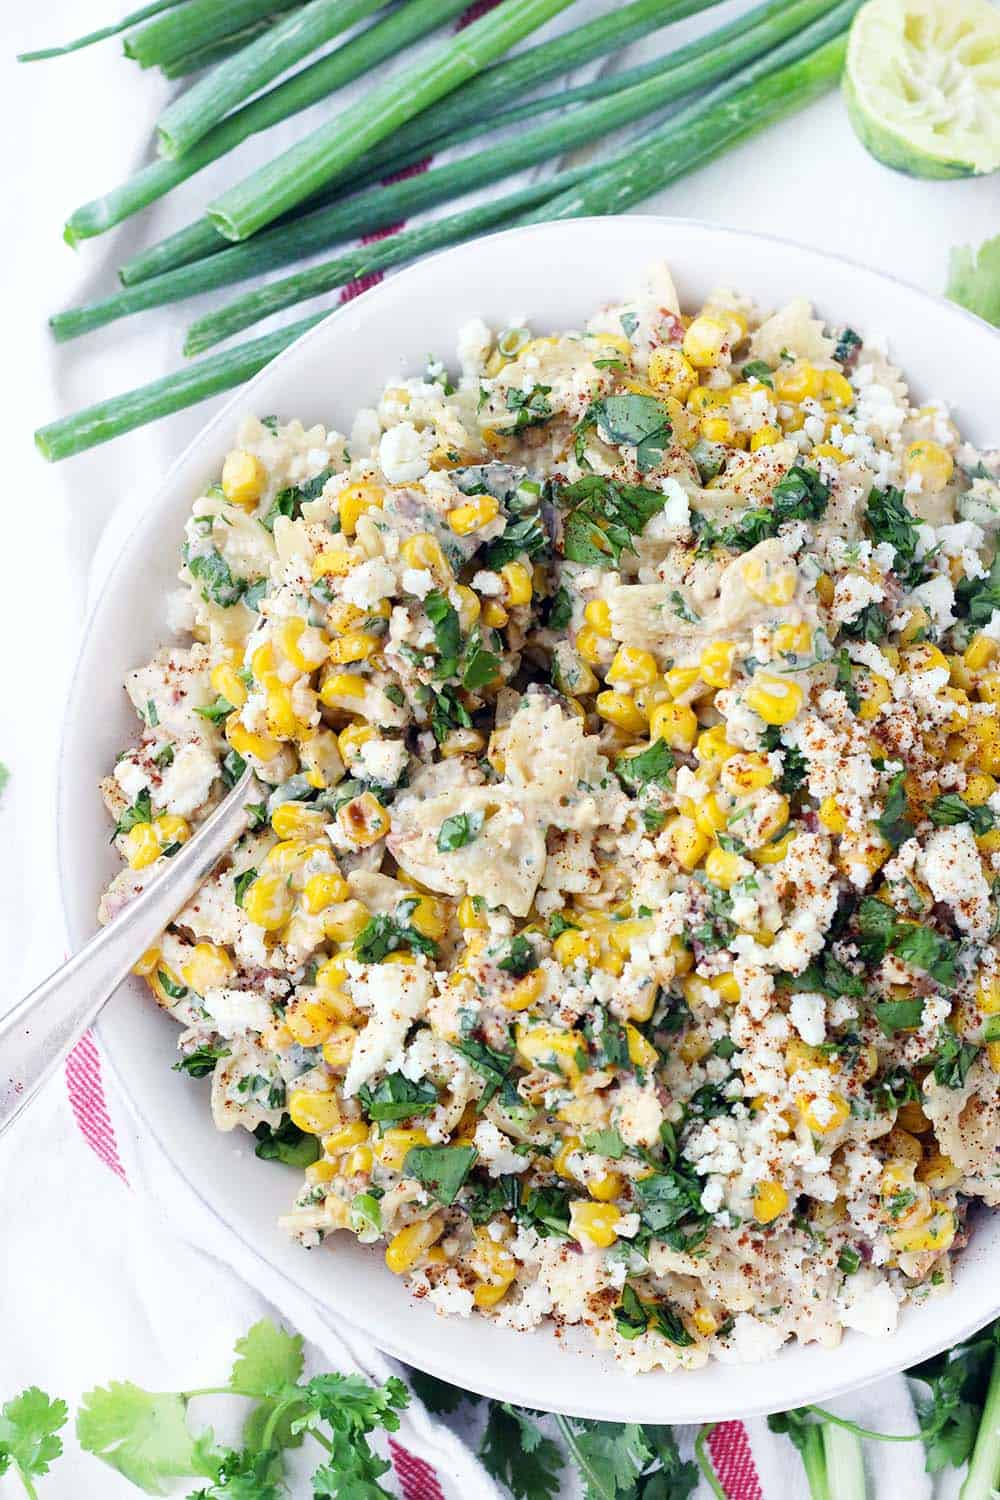 Overhead shot of Mexican corn salad garnished with fresh parsley and paprika